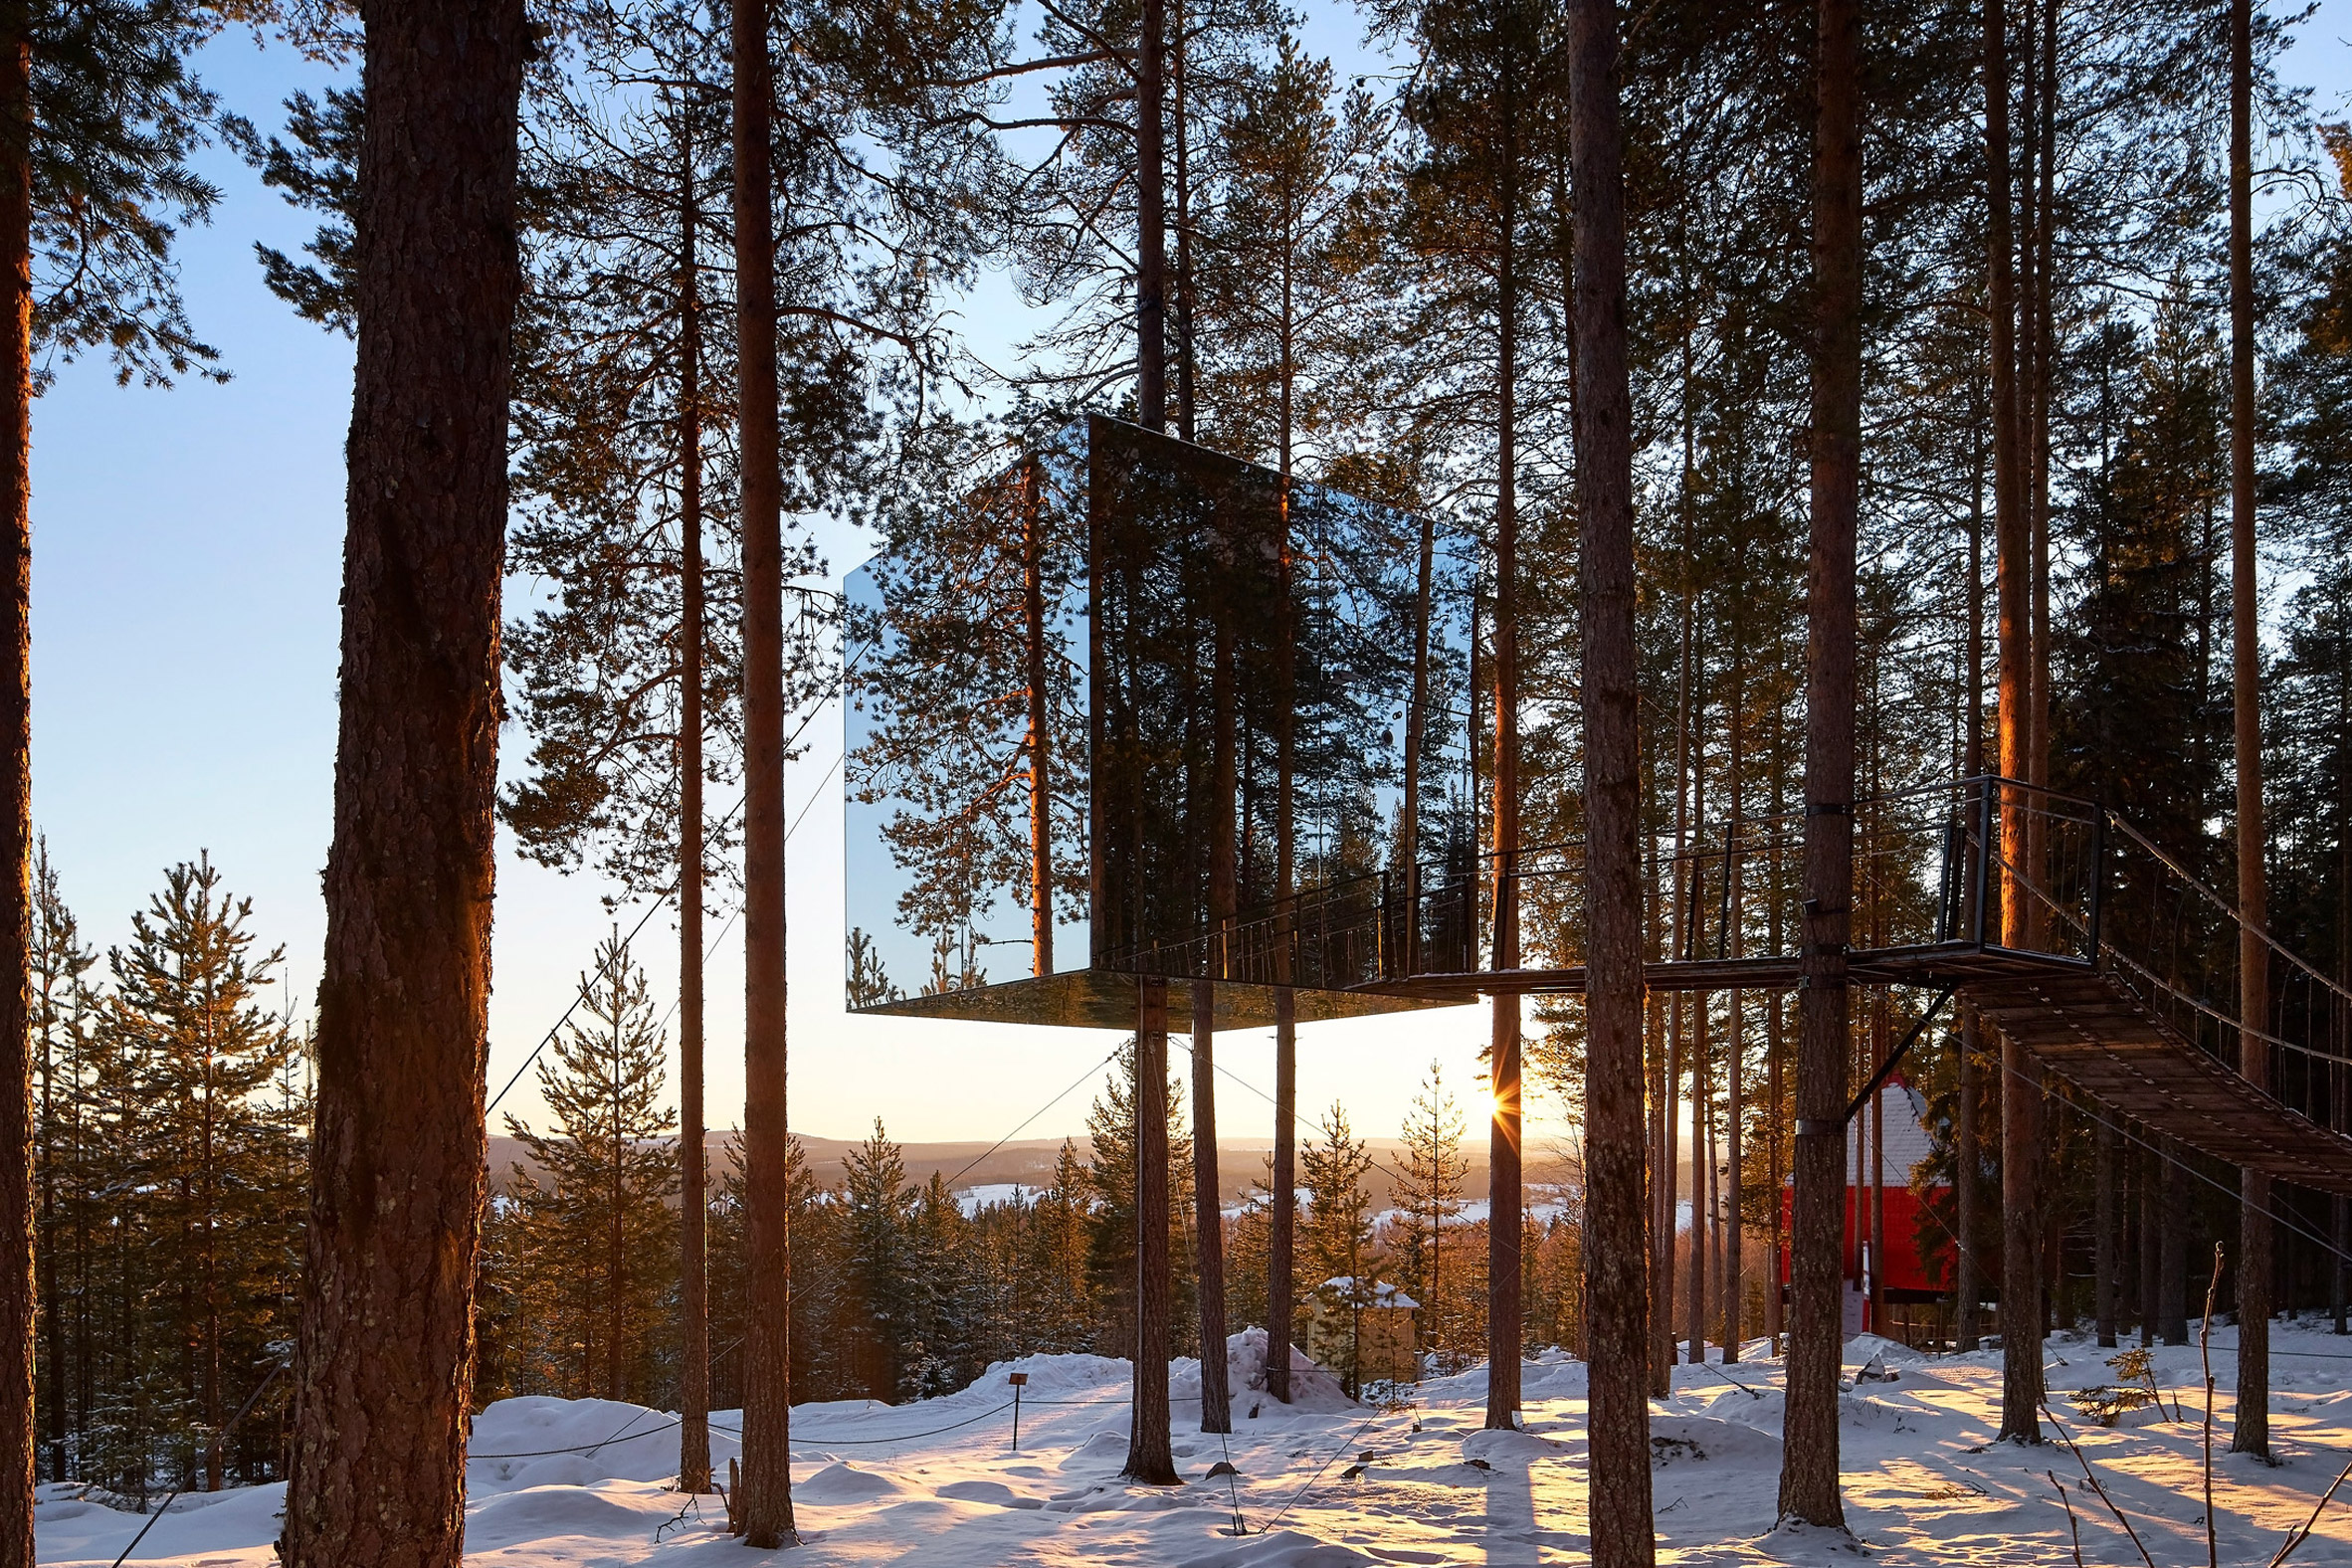 Mirrored cabin perched above ground blends with the sky and trees